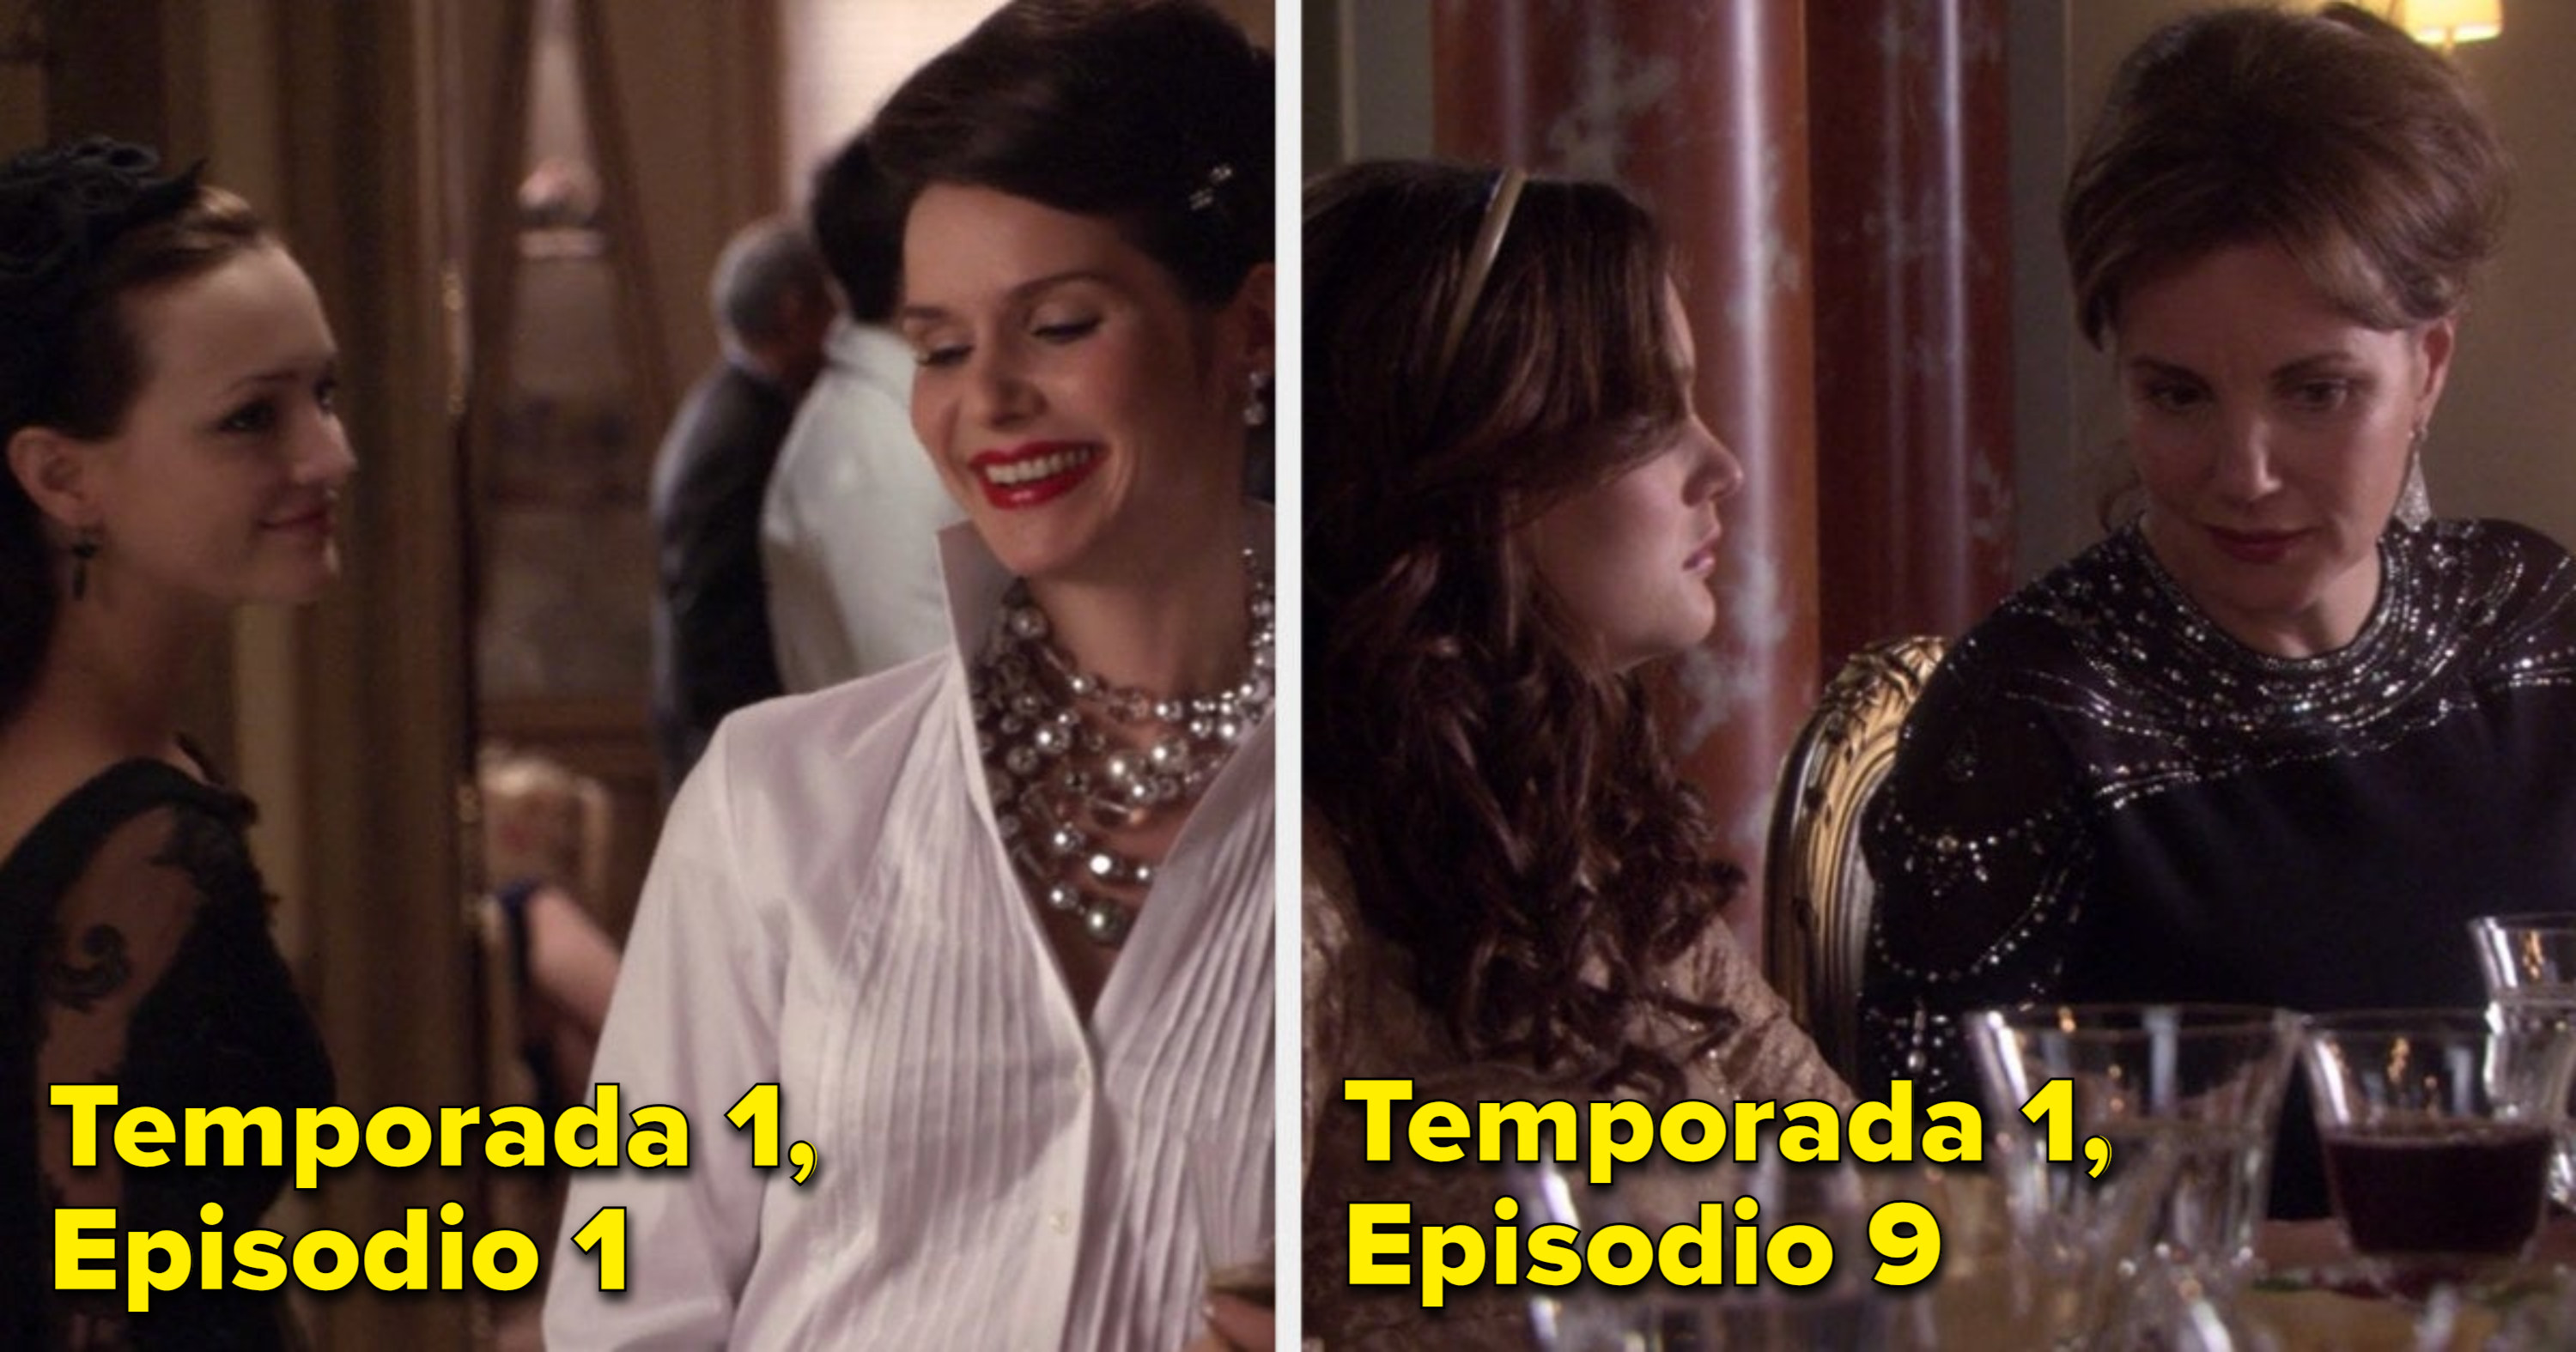 Florencia Lozano as Blair's mom in the pilot and Margaret Colin as Blair's mom later on